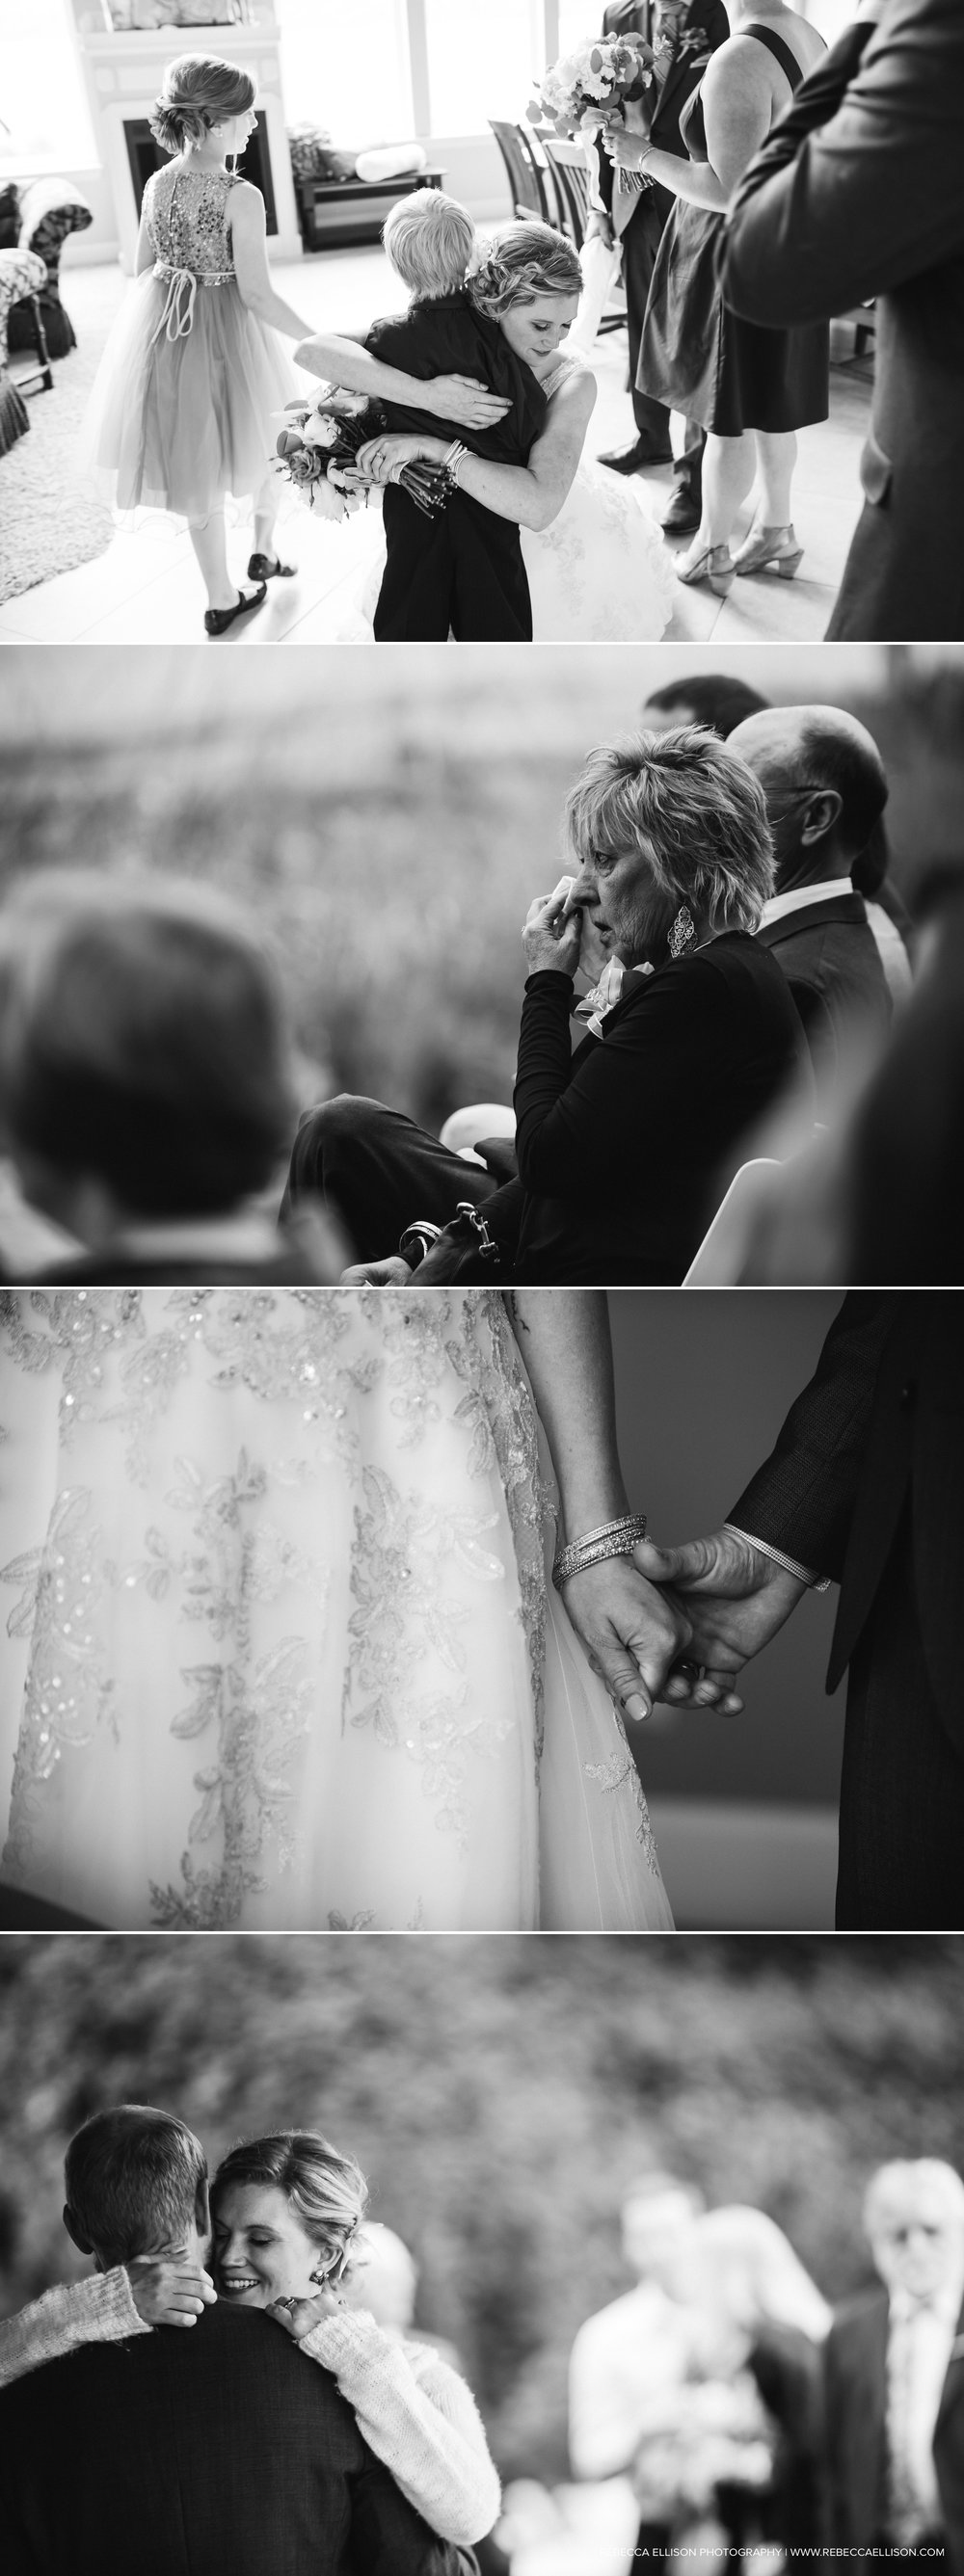 2016 Best of for Seattle Wedding Photographer, Rebecca Ellison. Best wedding images from 2016 .